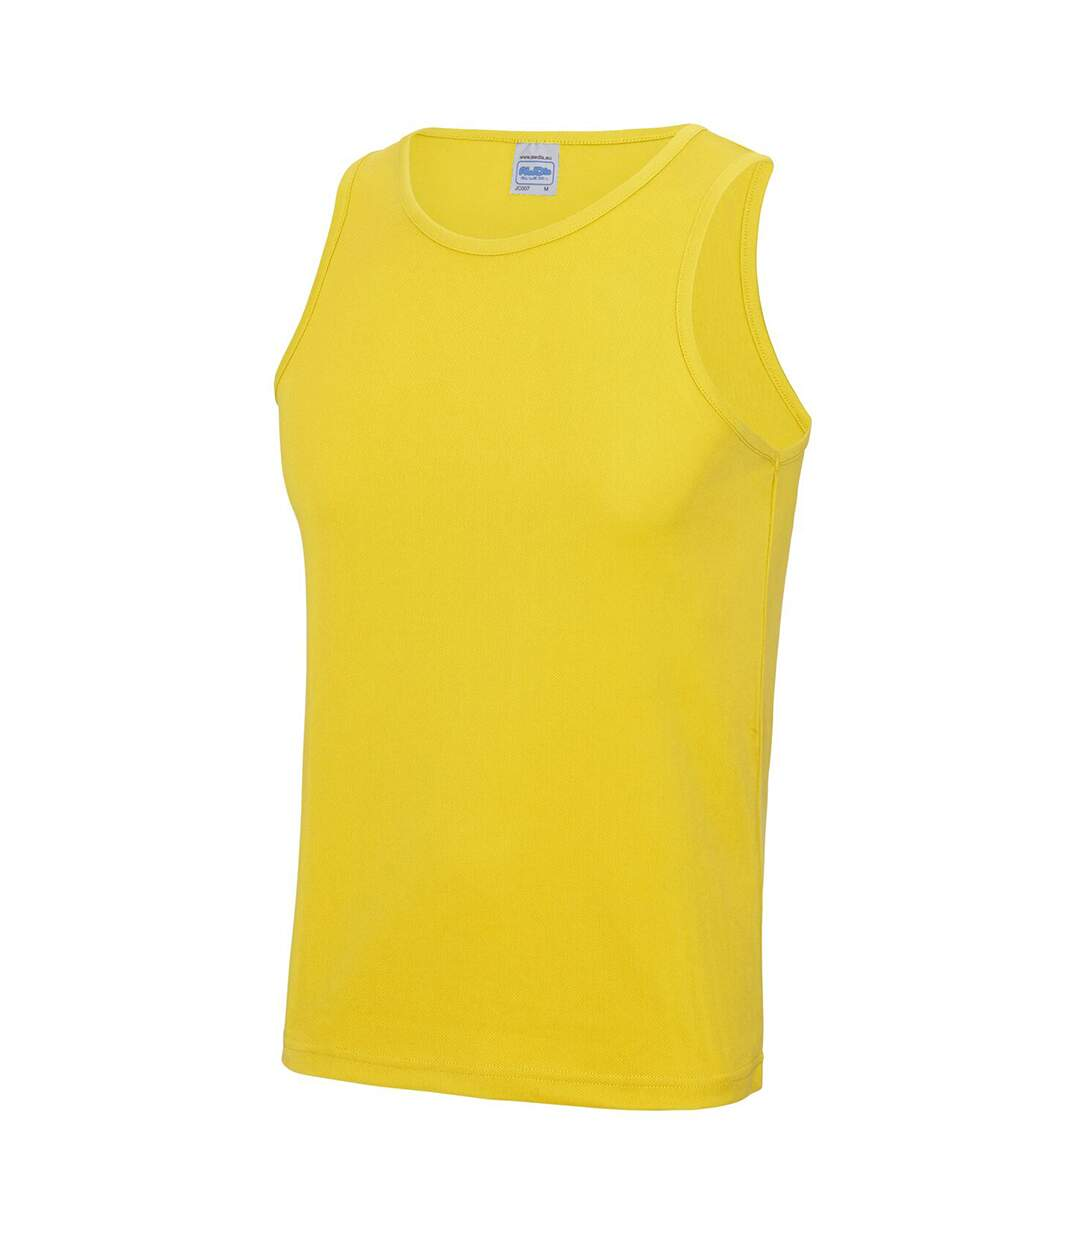 Just Cool Mens Sports Gym Plain Tank / Vest Top (Sun Yellow) - UTRW687